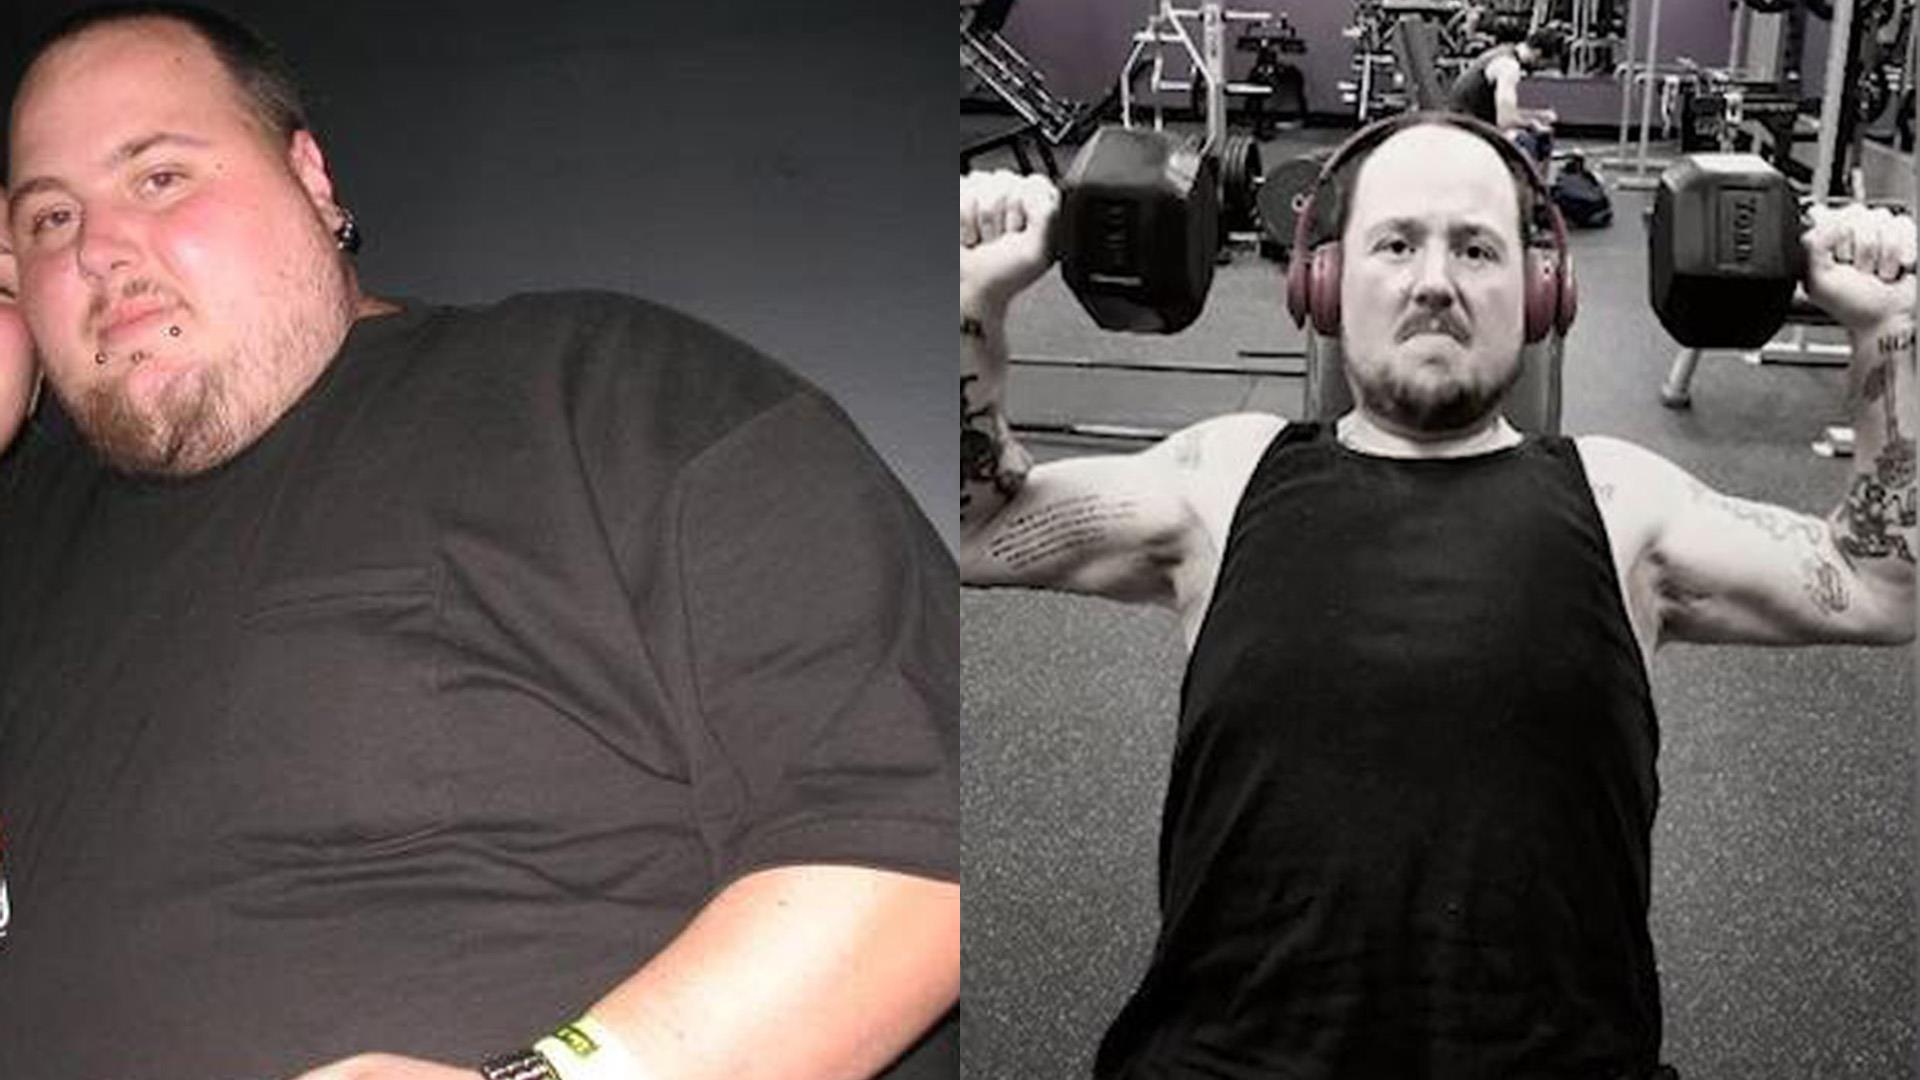 How to lose weight when you're 500 pounds: Man shares weight-loss advice